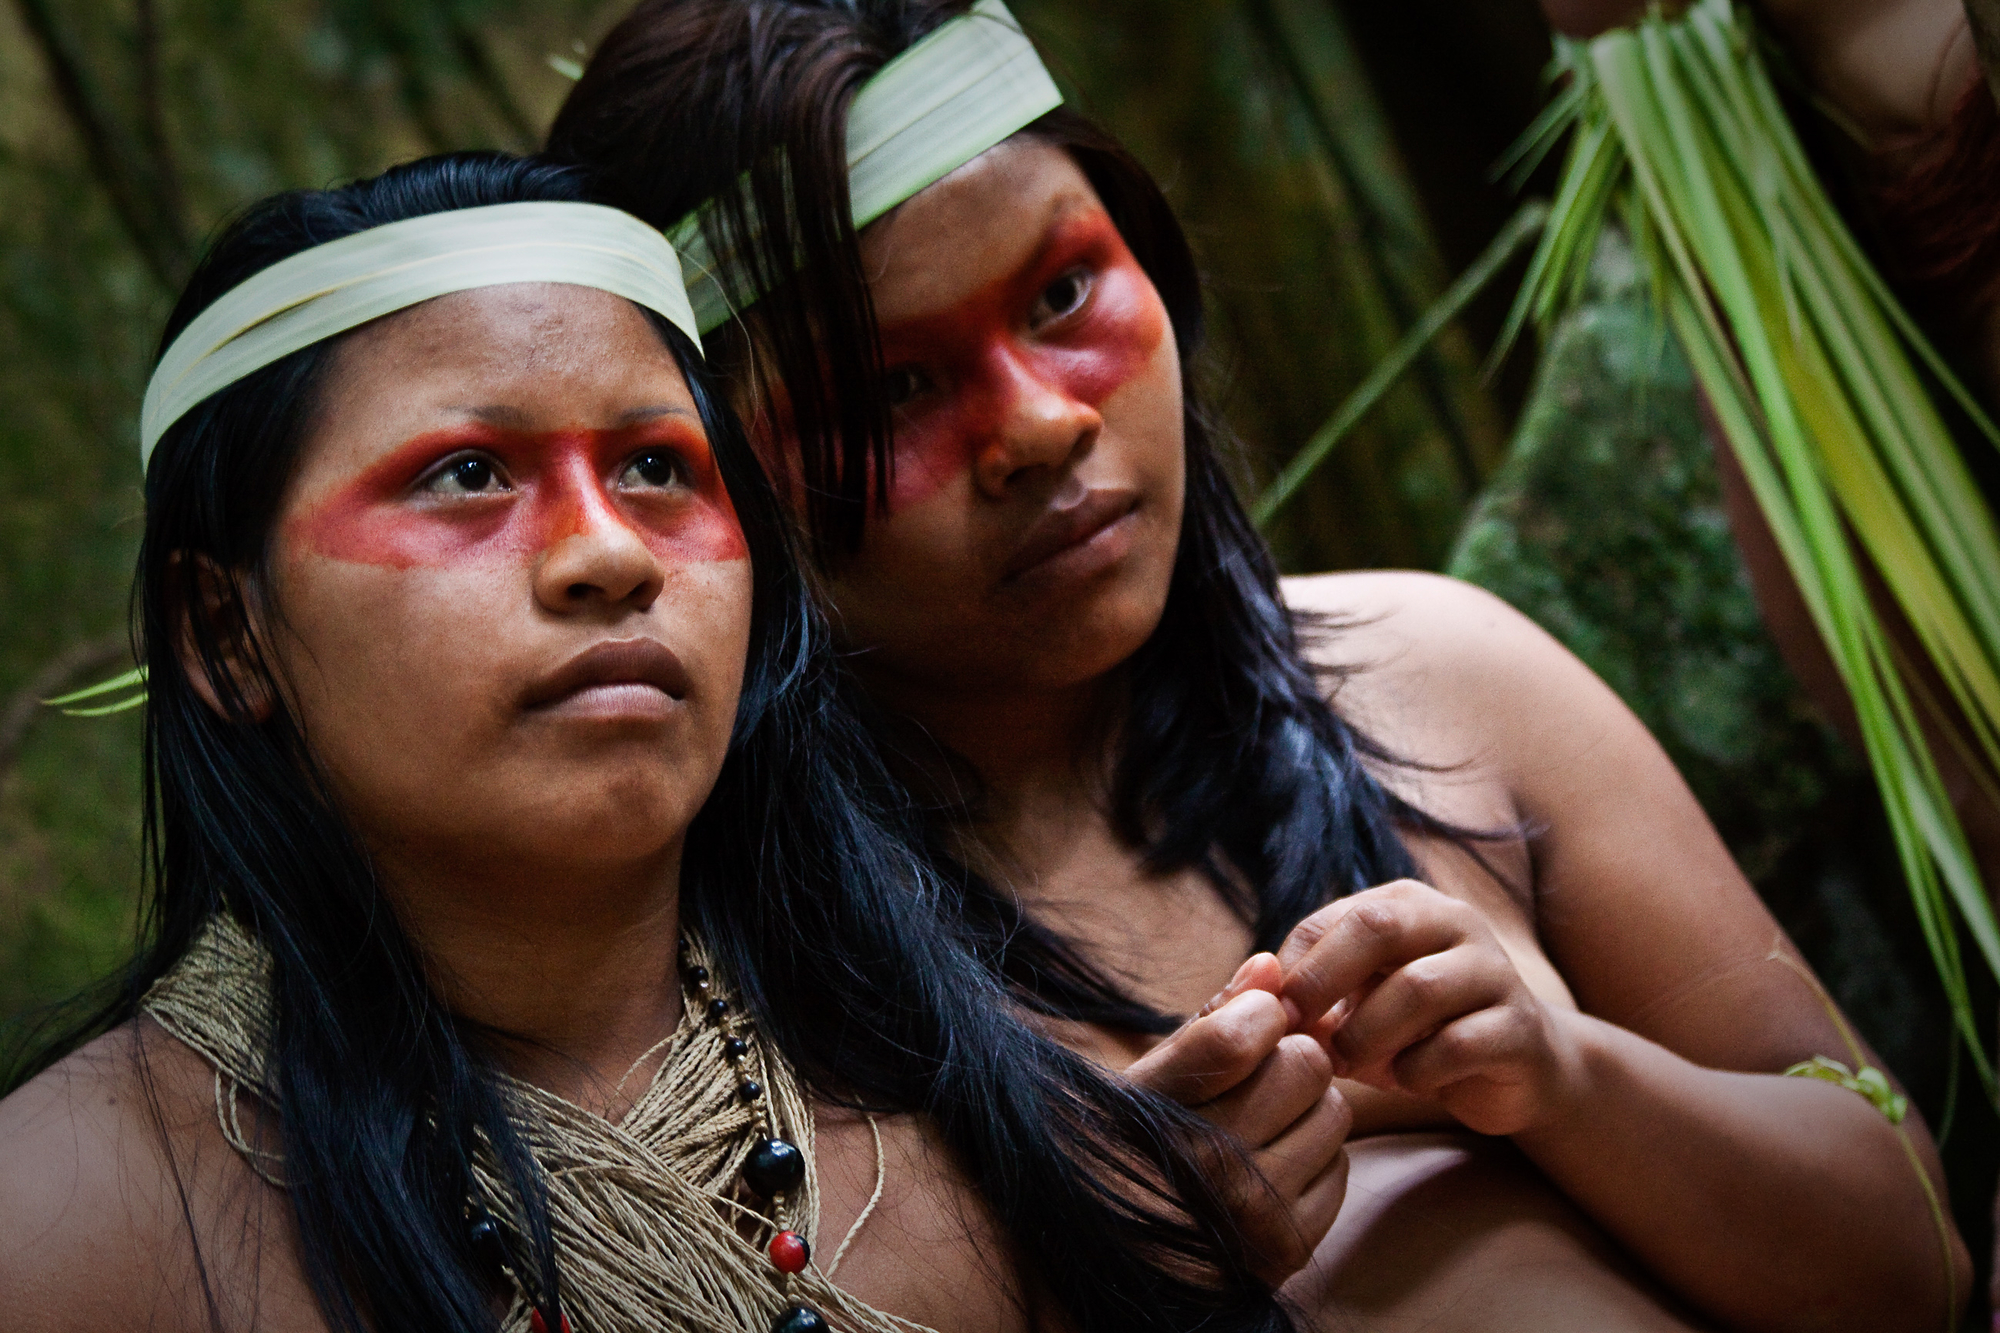 Indigenous group wins historic land battle against the Ecuadorian government